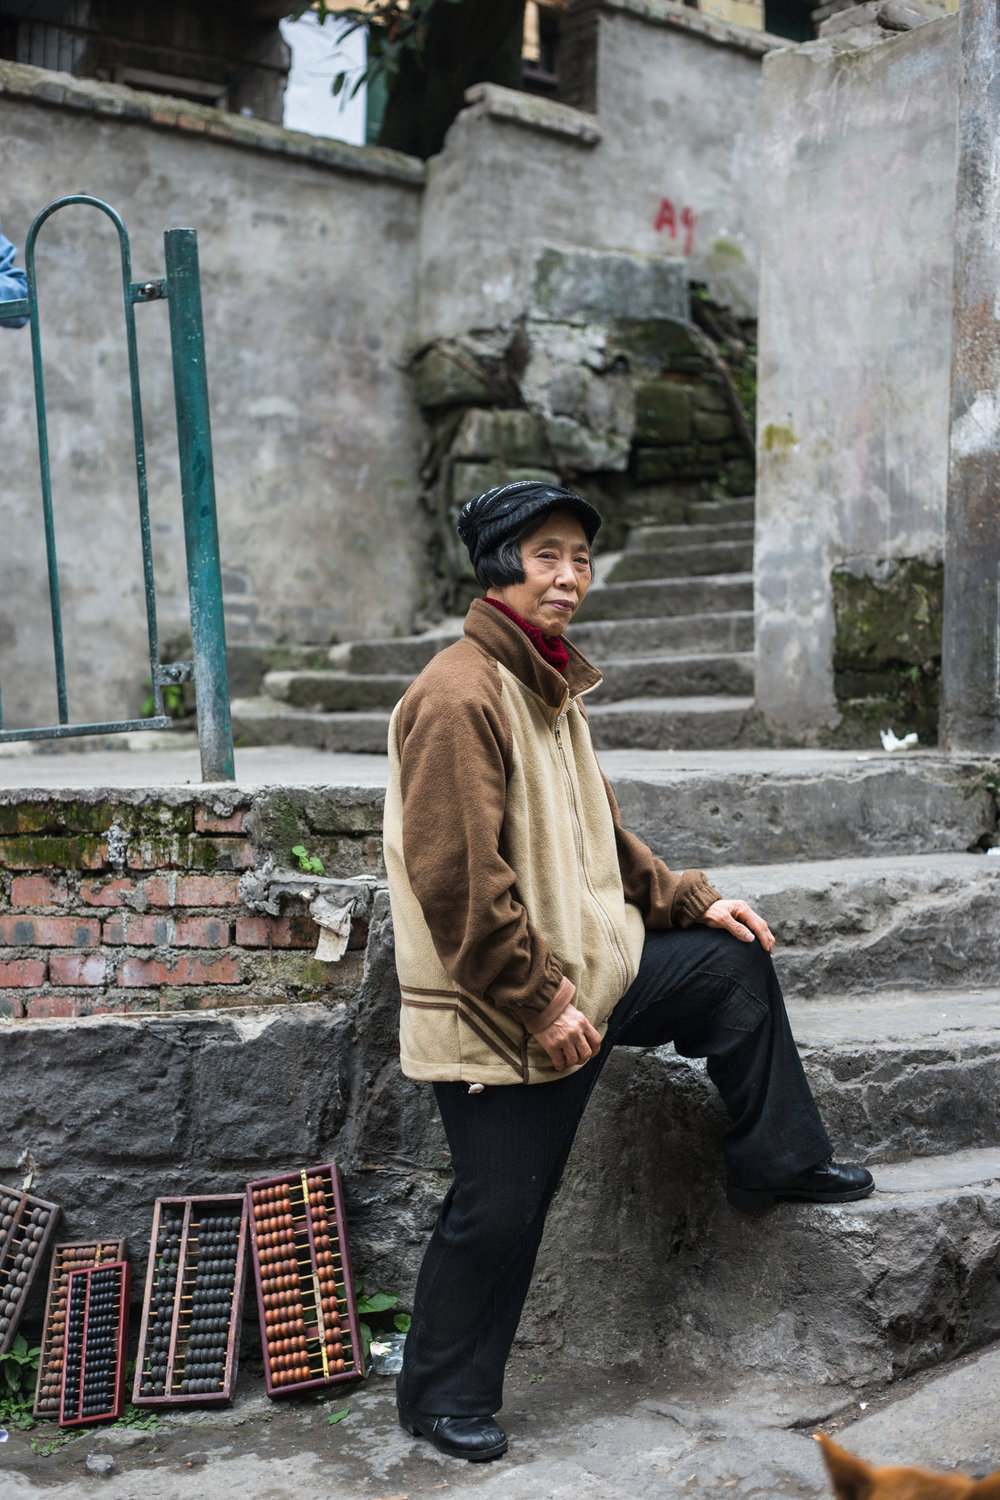 """The government moved us on a few years ago and relocated us about fifteen minutes walk away. We're lucky it's so close. This was home but life is better where we are.""  Jiao Shi, Chongqing February 2017"